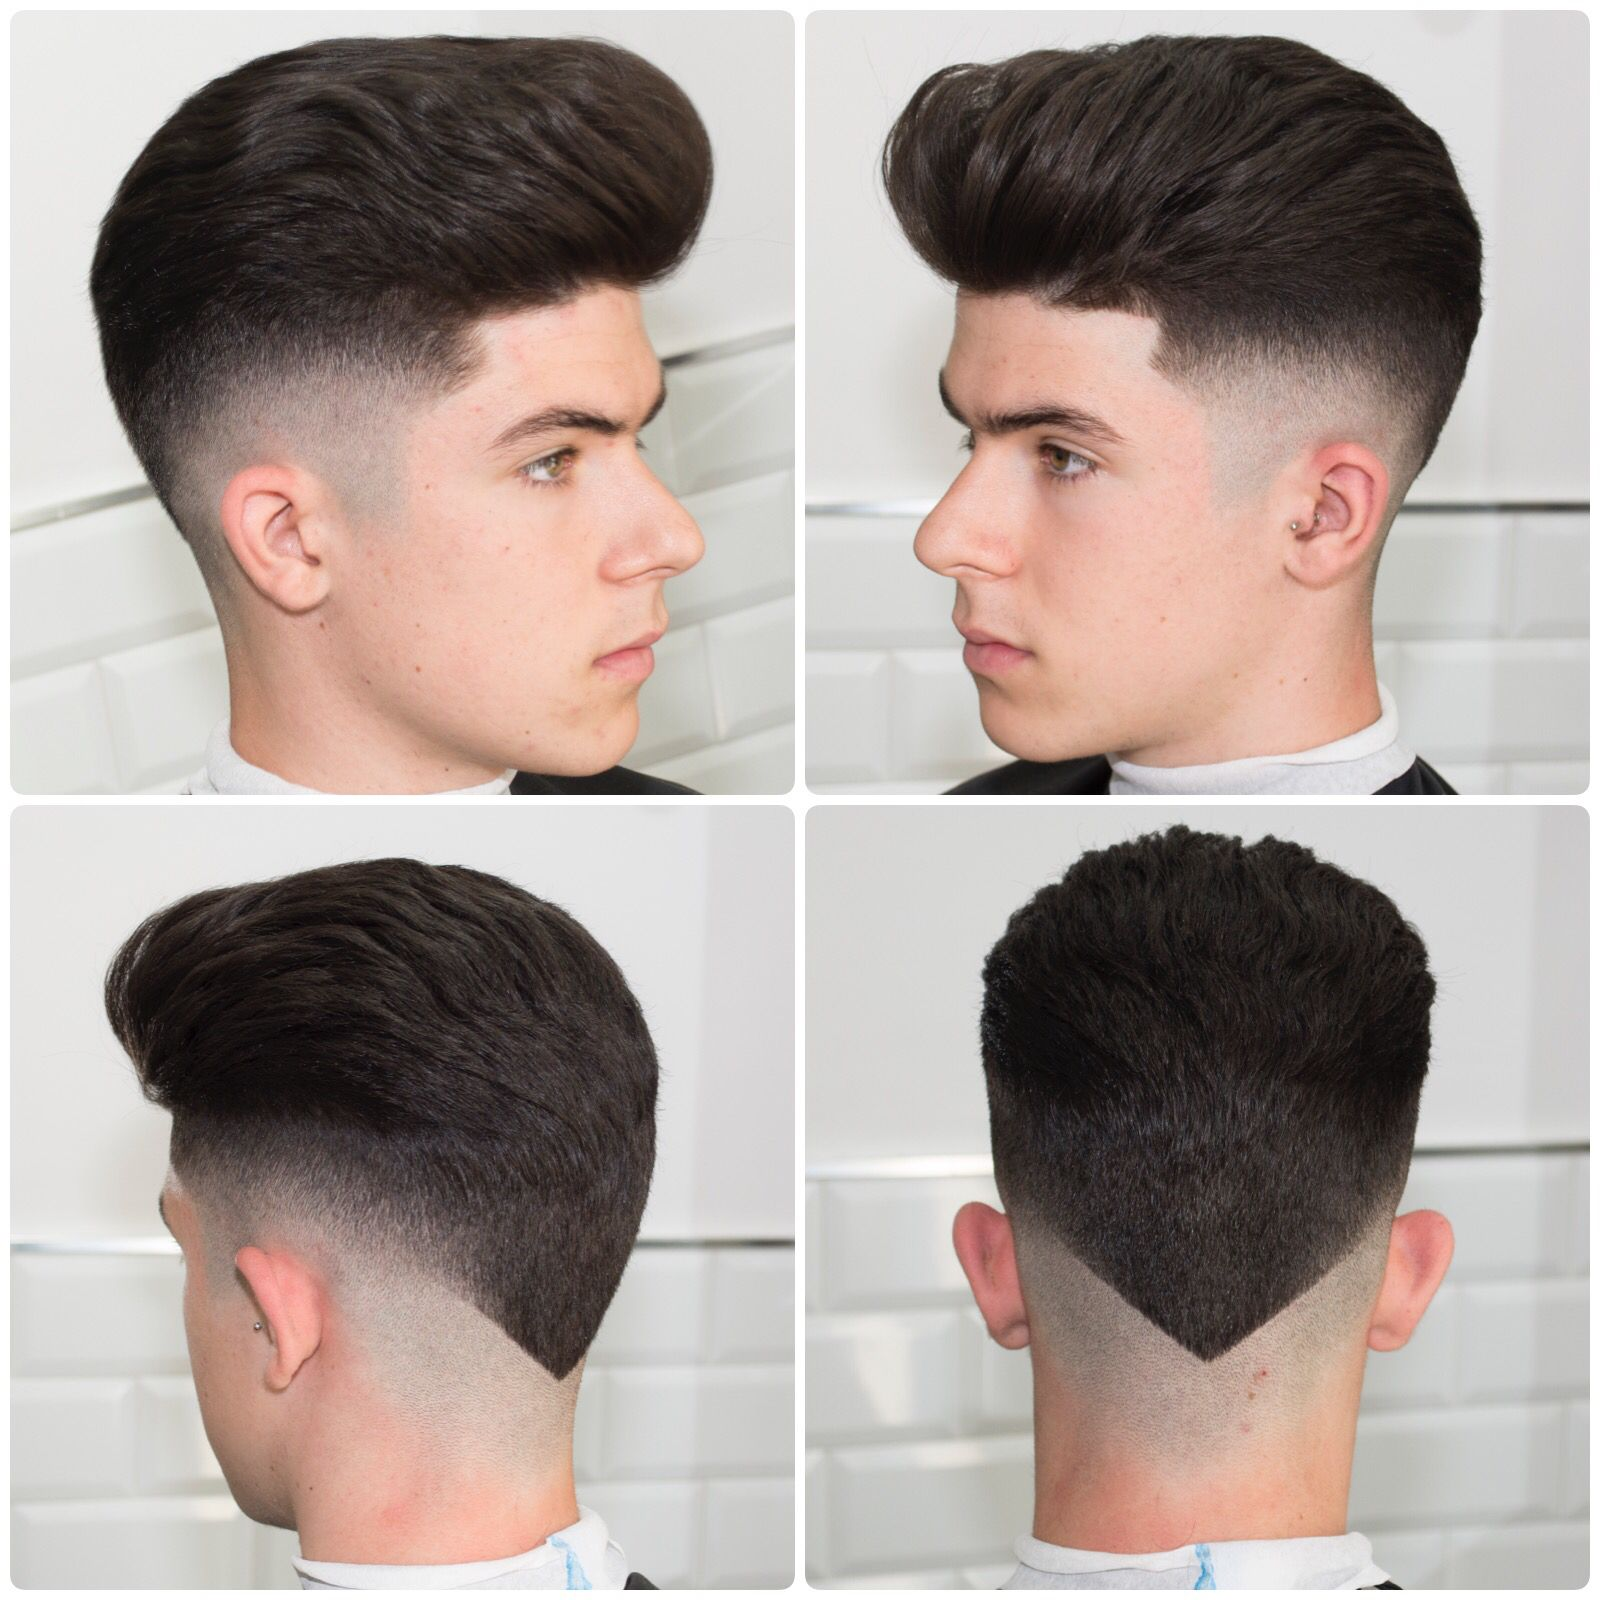 Haircut And Hairstyle By Javi Thebarber Short Hair Haircuts Hair Styles Mens Hairstyles Thick Hair